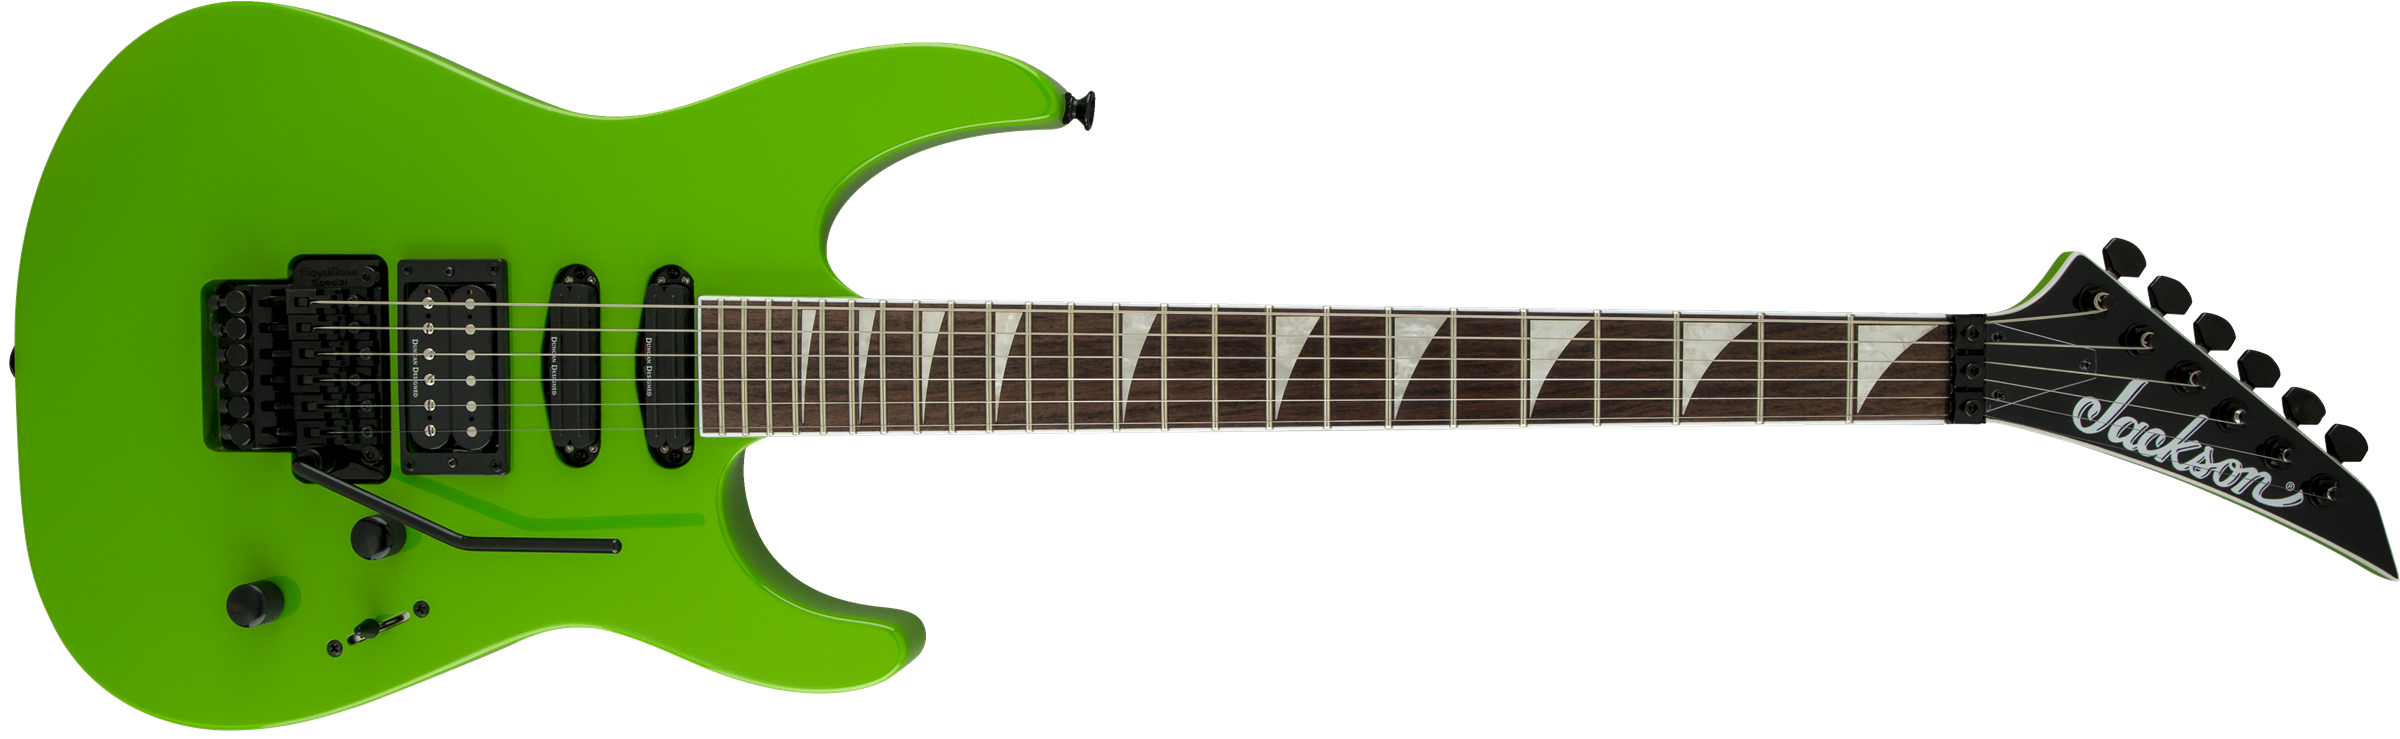 Soloist X Series Sl3x Rosewood Fingerboard Slime Green Wiring Guitar Pickups 101 The Jackson Name Has Always Been Synonymous With State Of Art Technology And Playing Leading Way In Crafting Instruments That Exceed